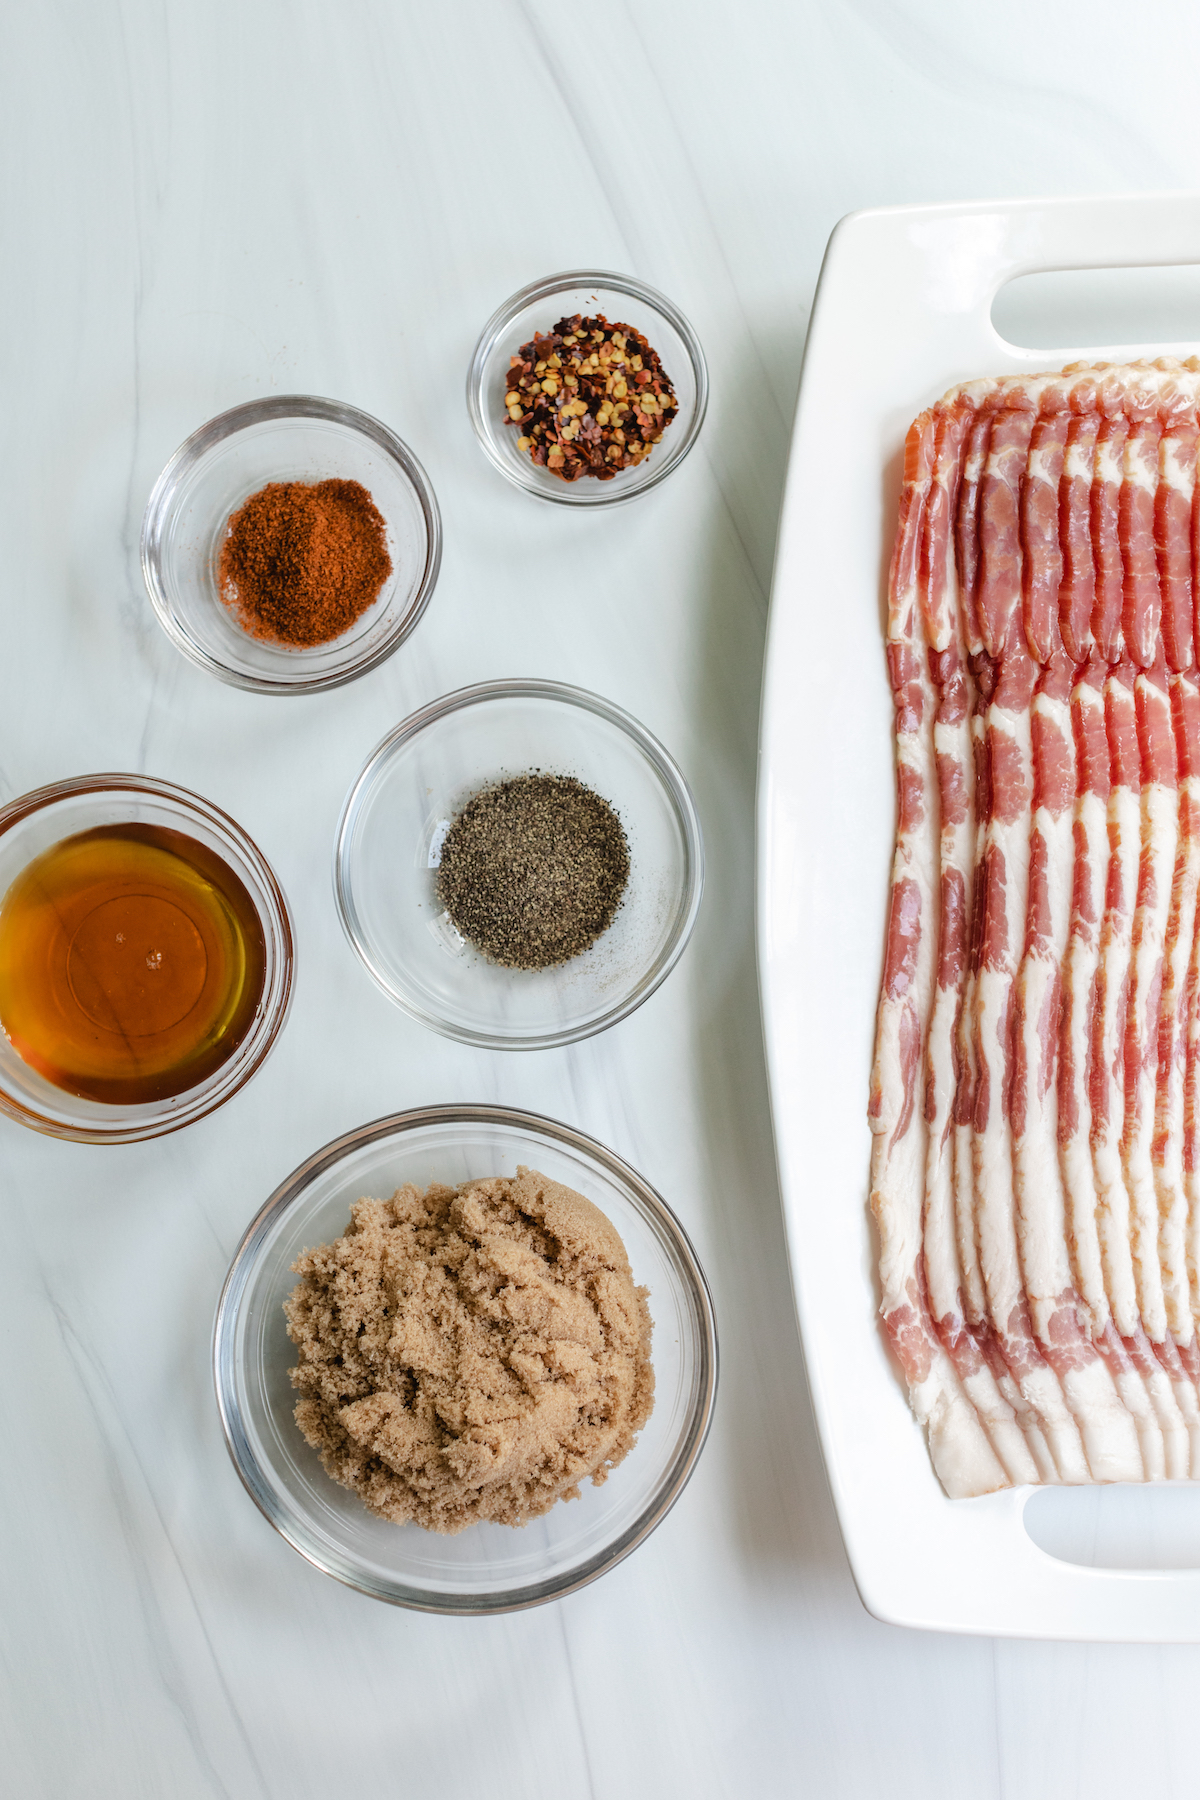 Thick cut bacon and assorted spices in prep bowls used to make Million Dollar Bacon